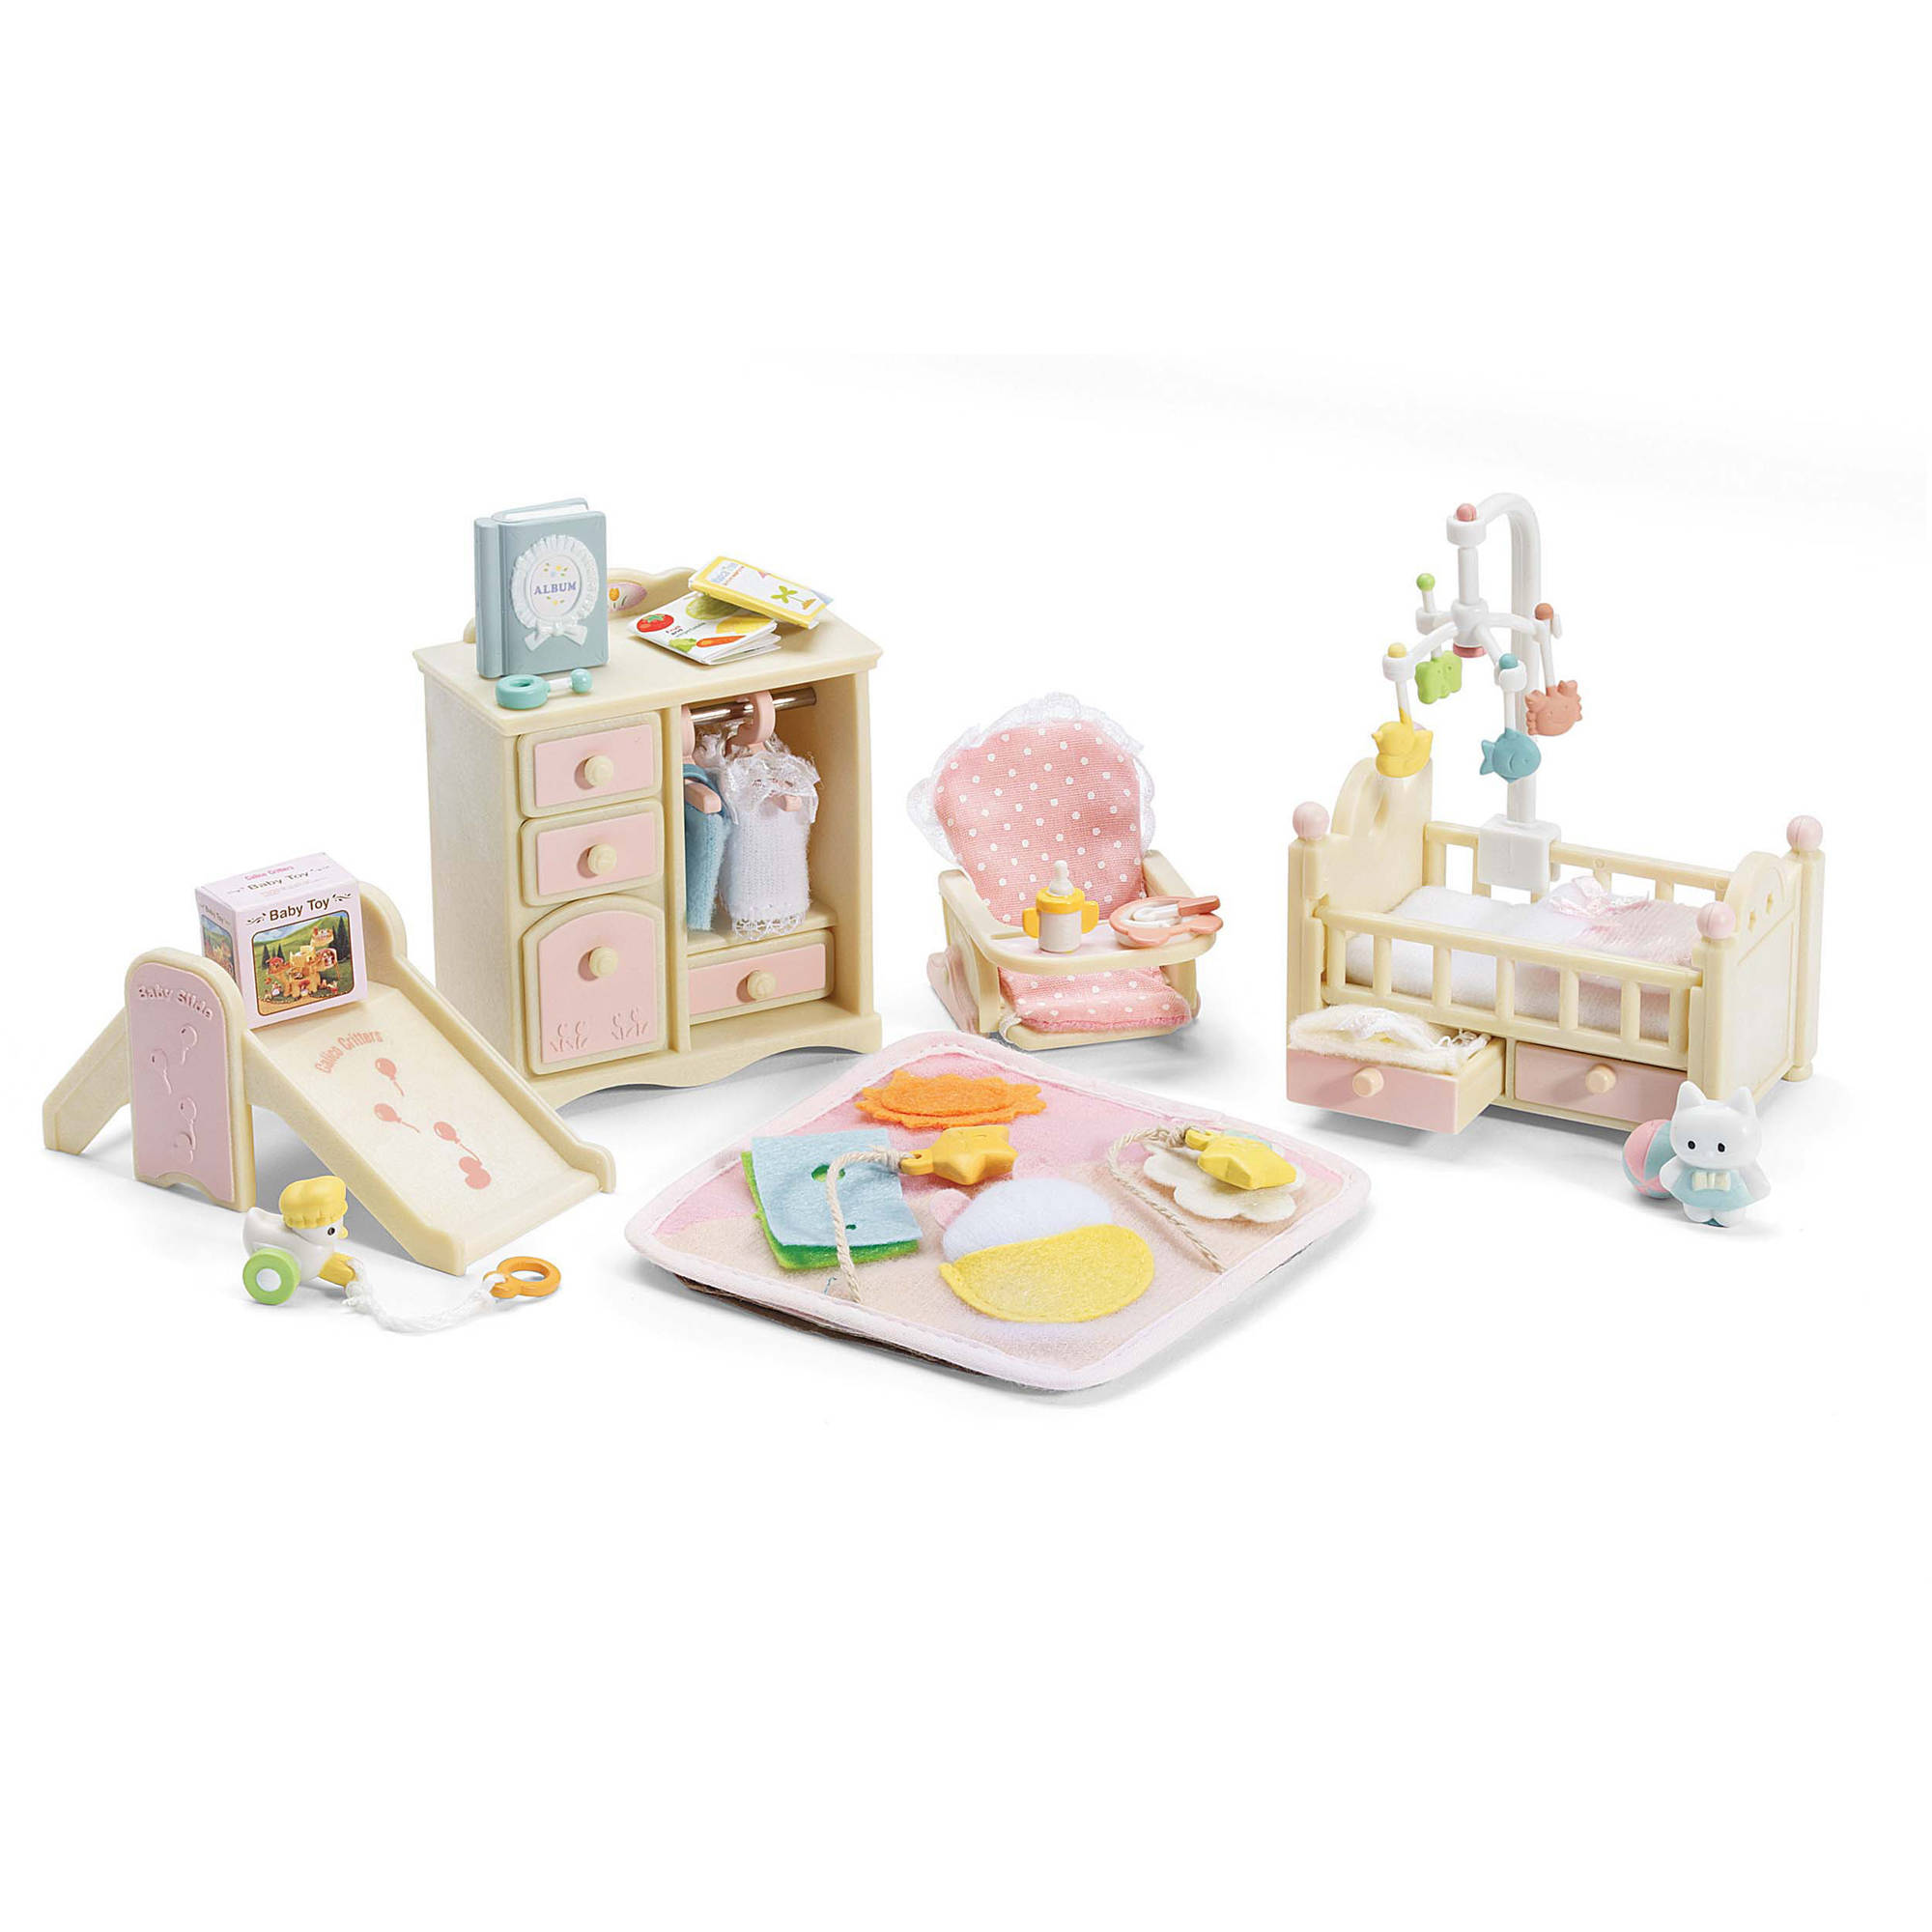 Fresh Calico Critters Bedroom Set Remodelling